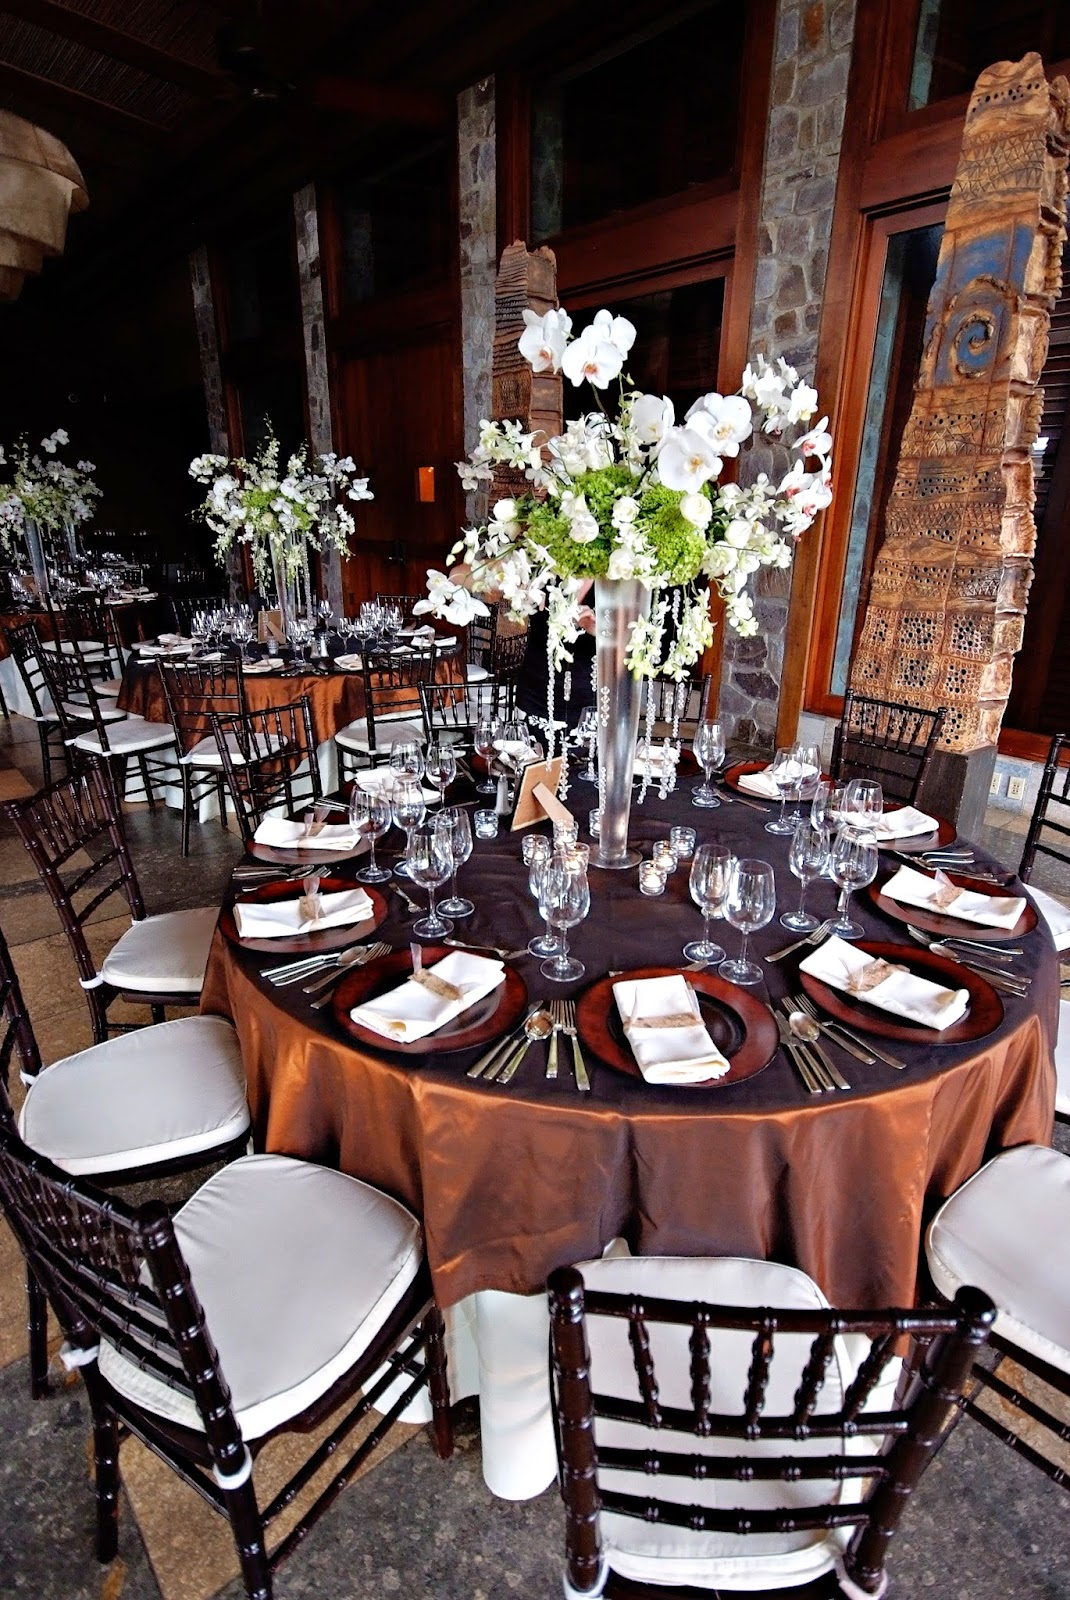 Brown and White Wedding Theme - To Remember a Timeless Moment in Elegance